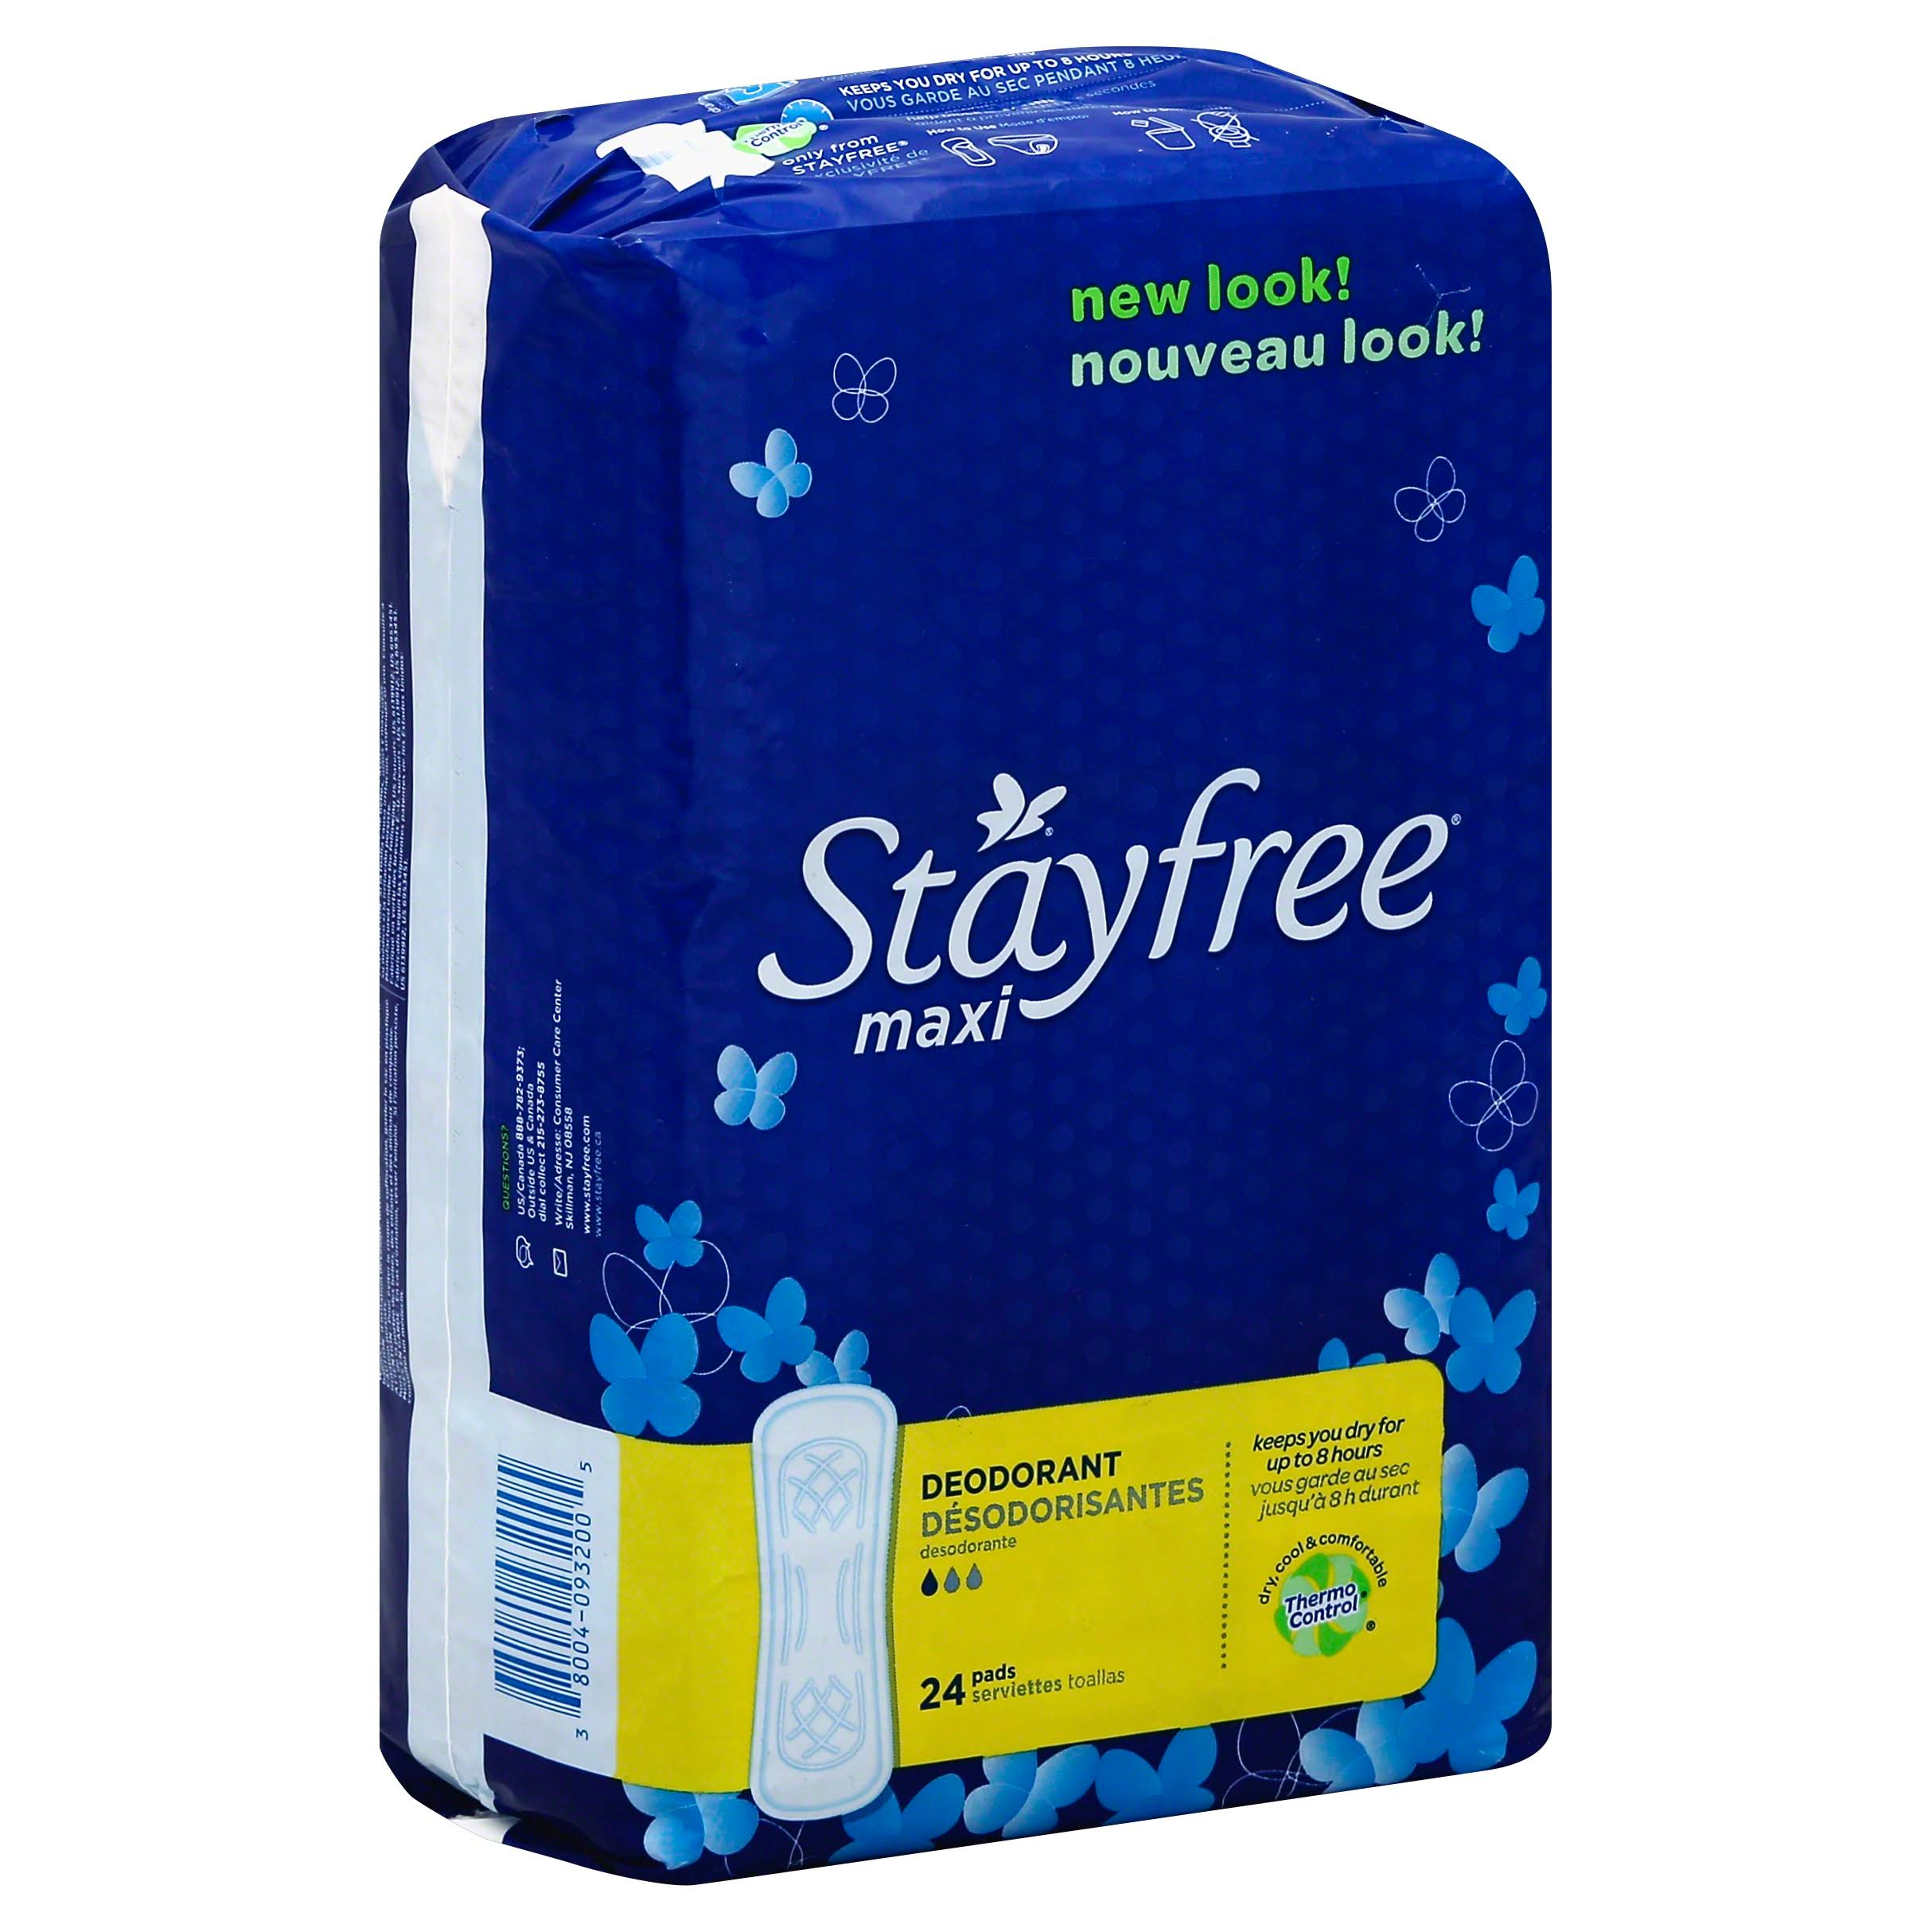 Stayfree Maxi Pads Regular Absorbency Deodorant Panty Liners - 24ct